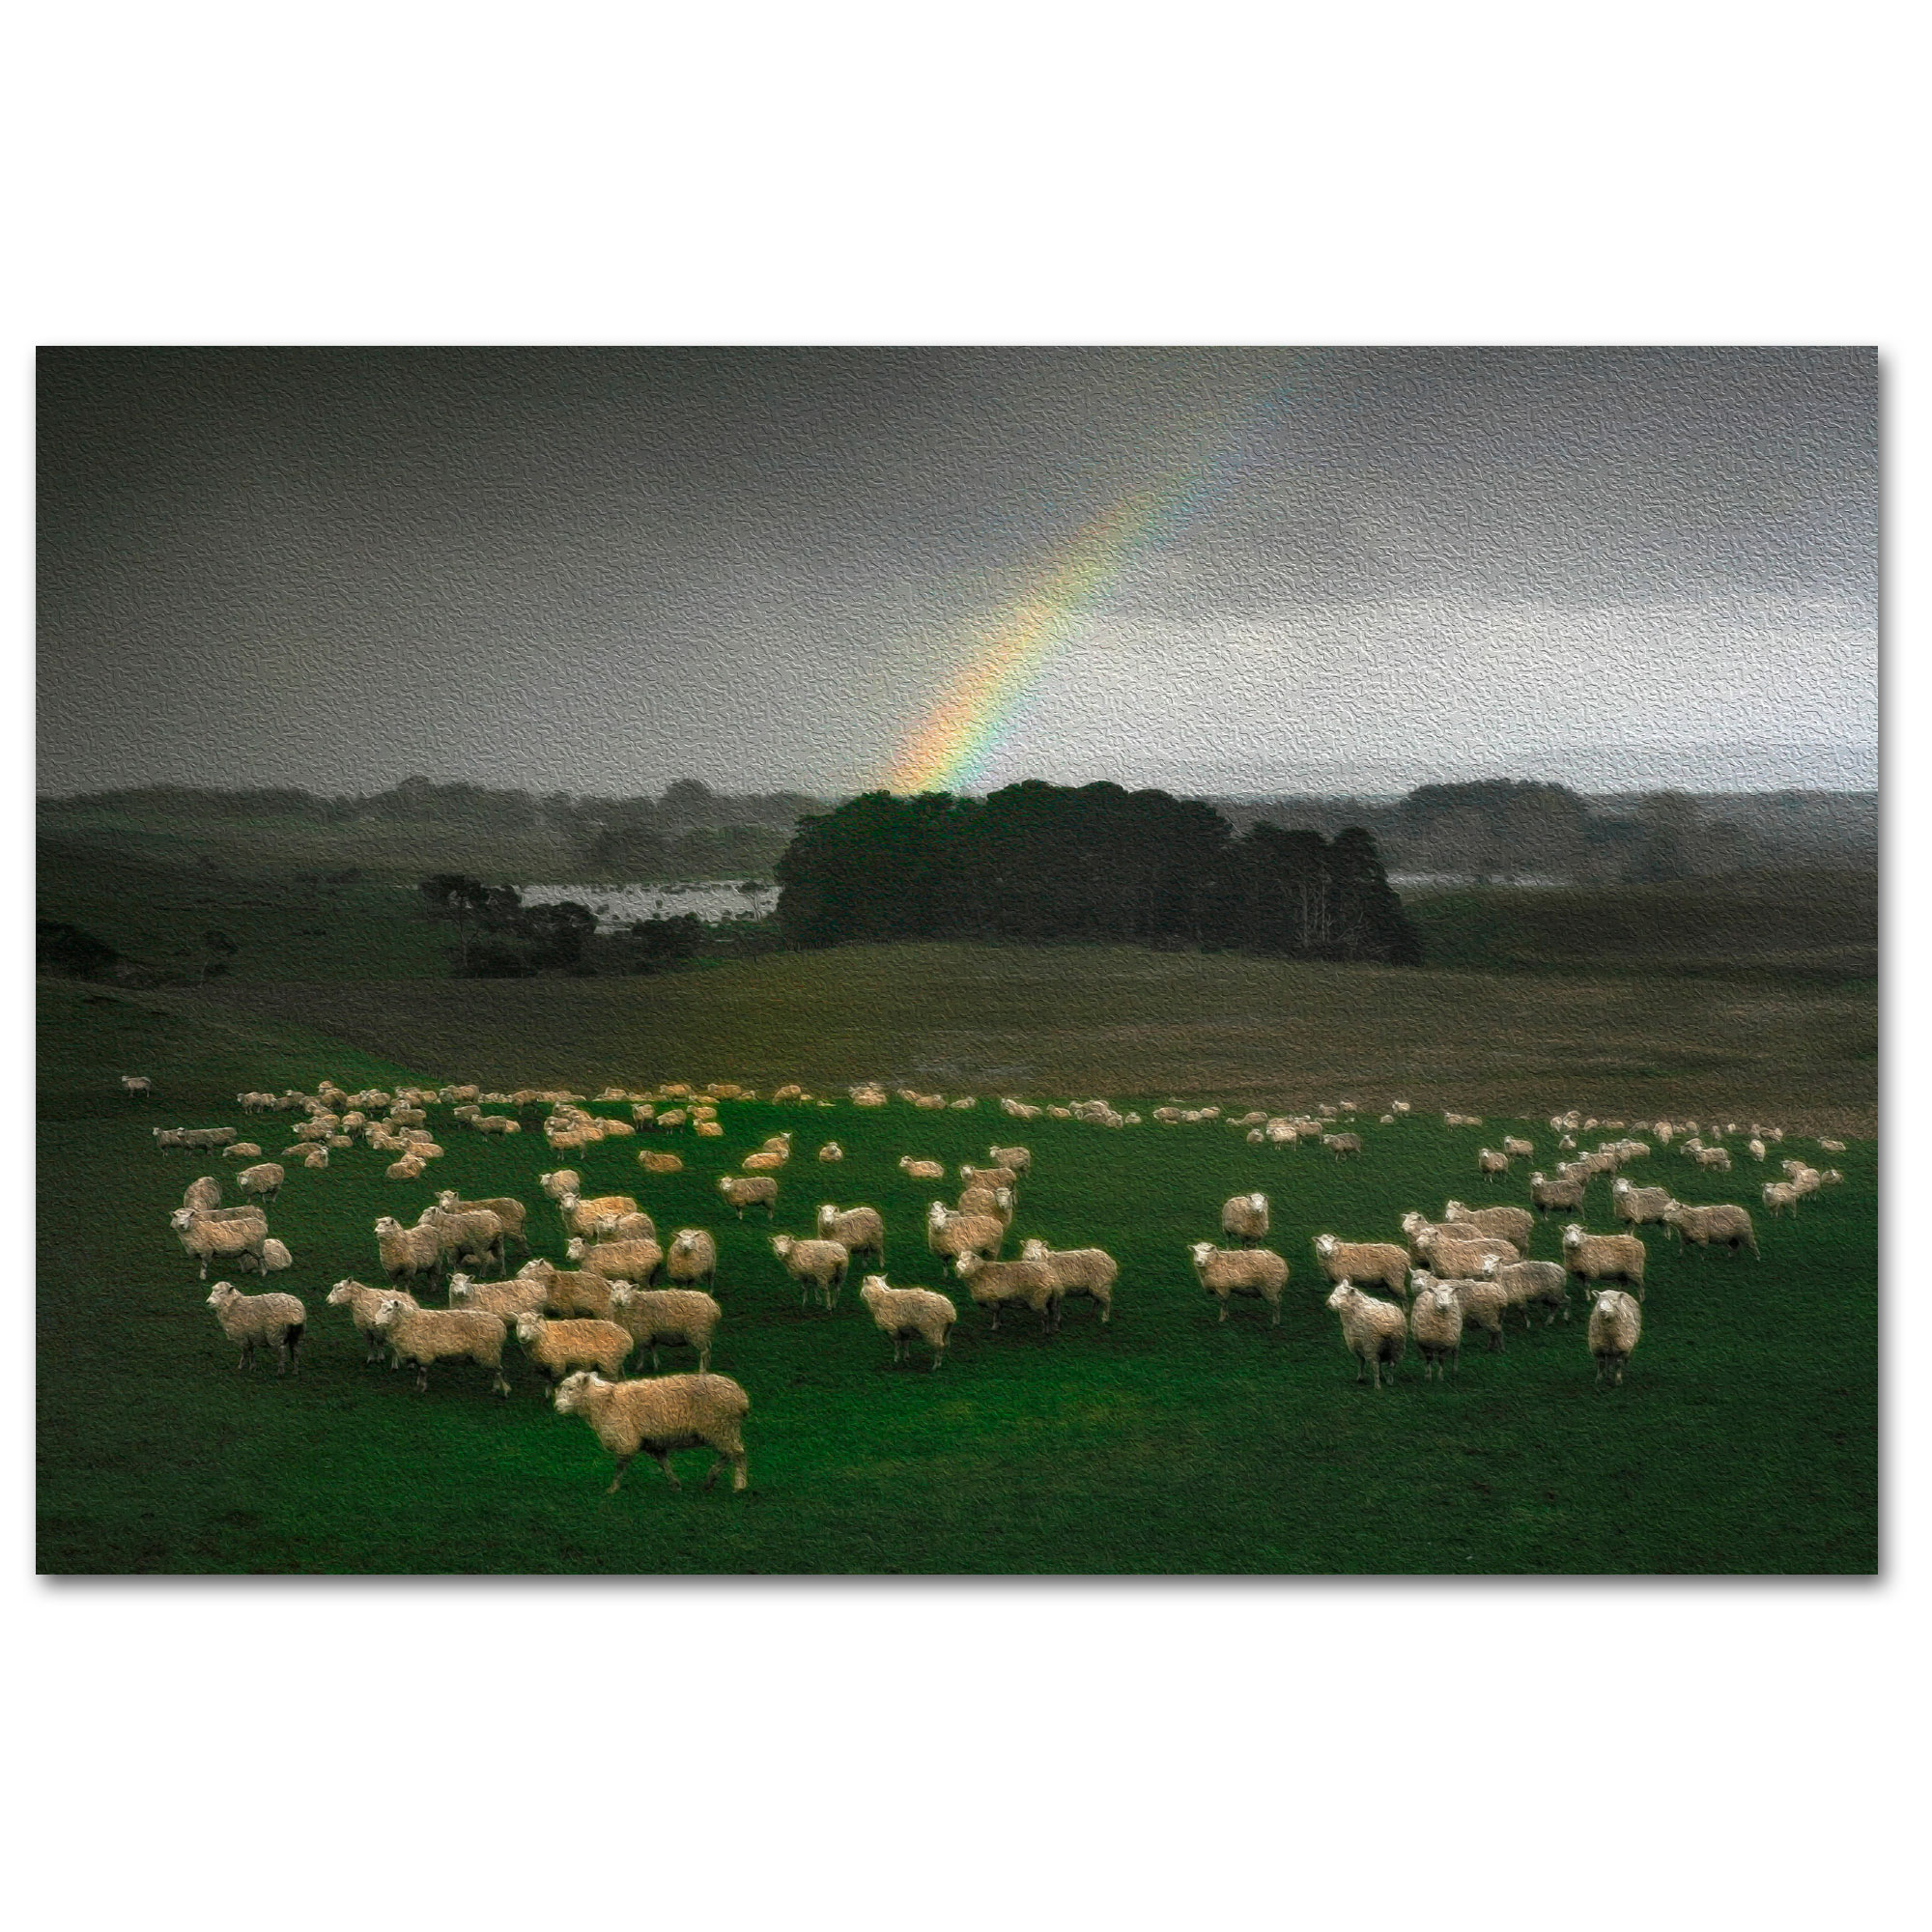 Sheep, woollen jumpers and a rainbow artwork.